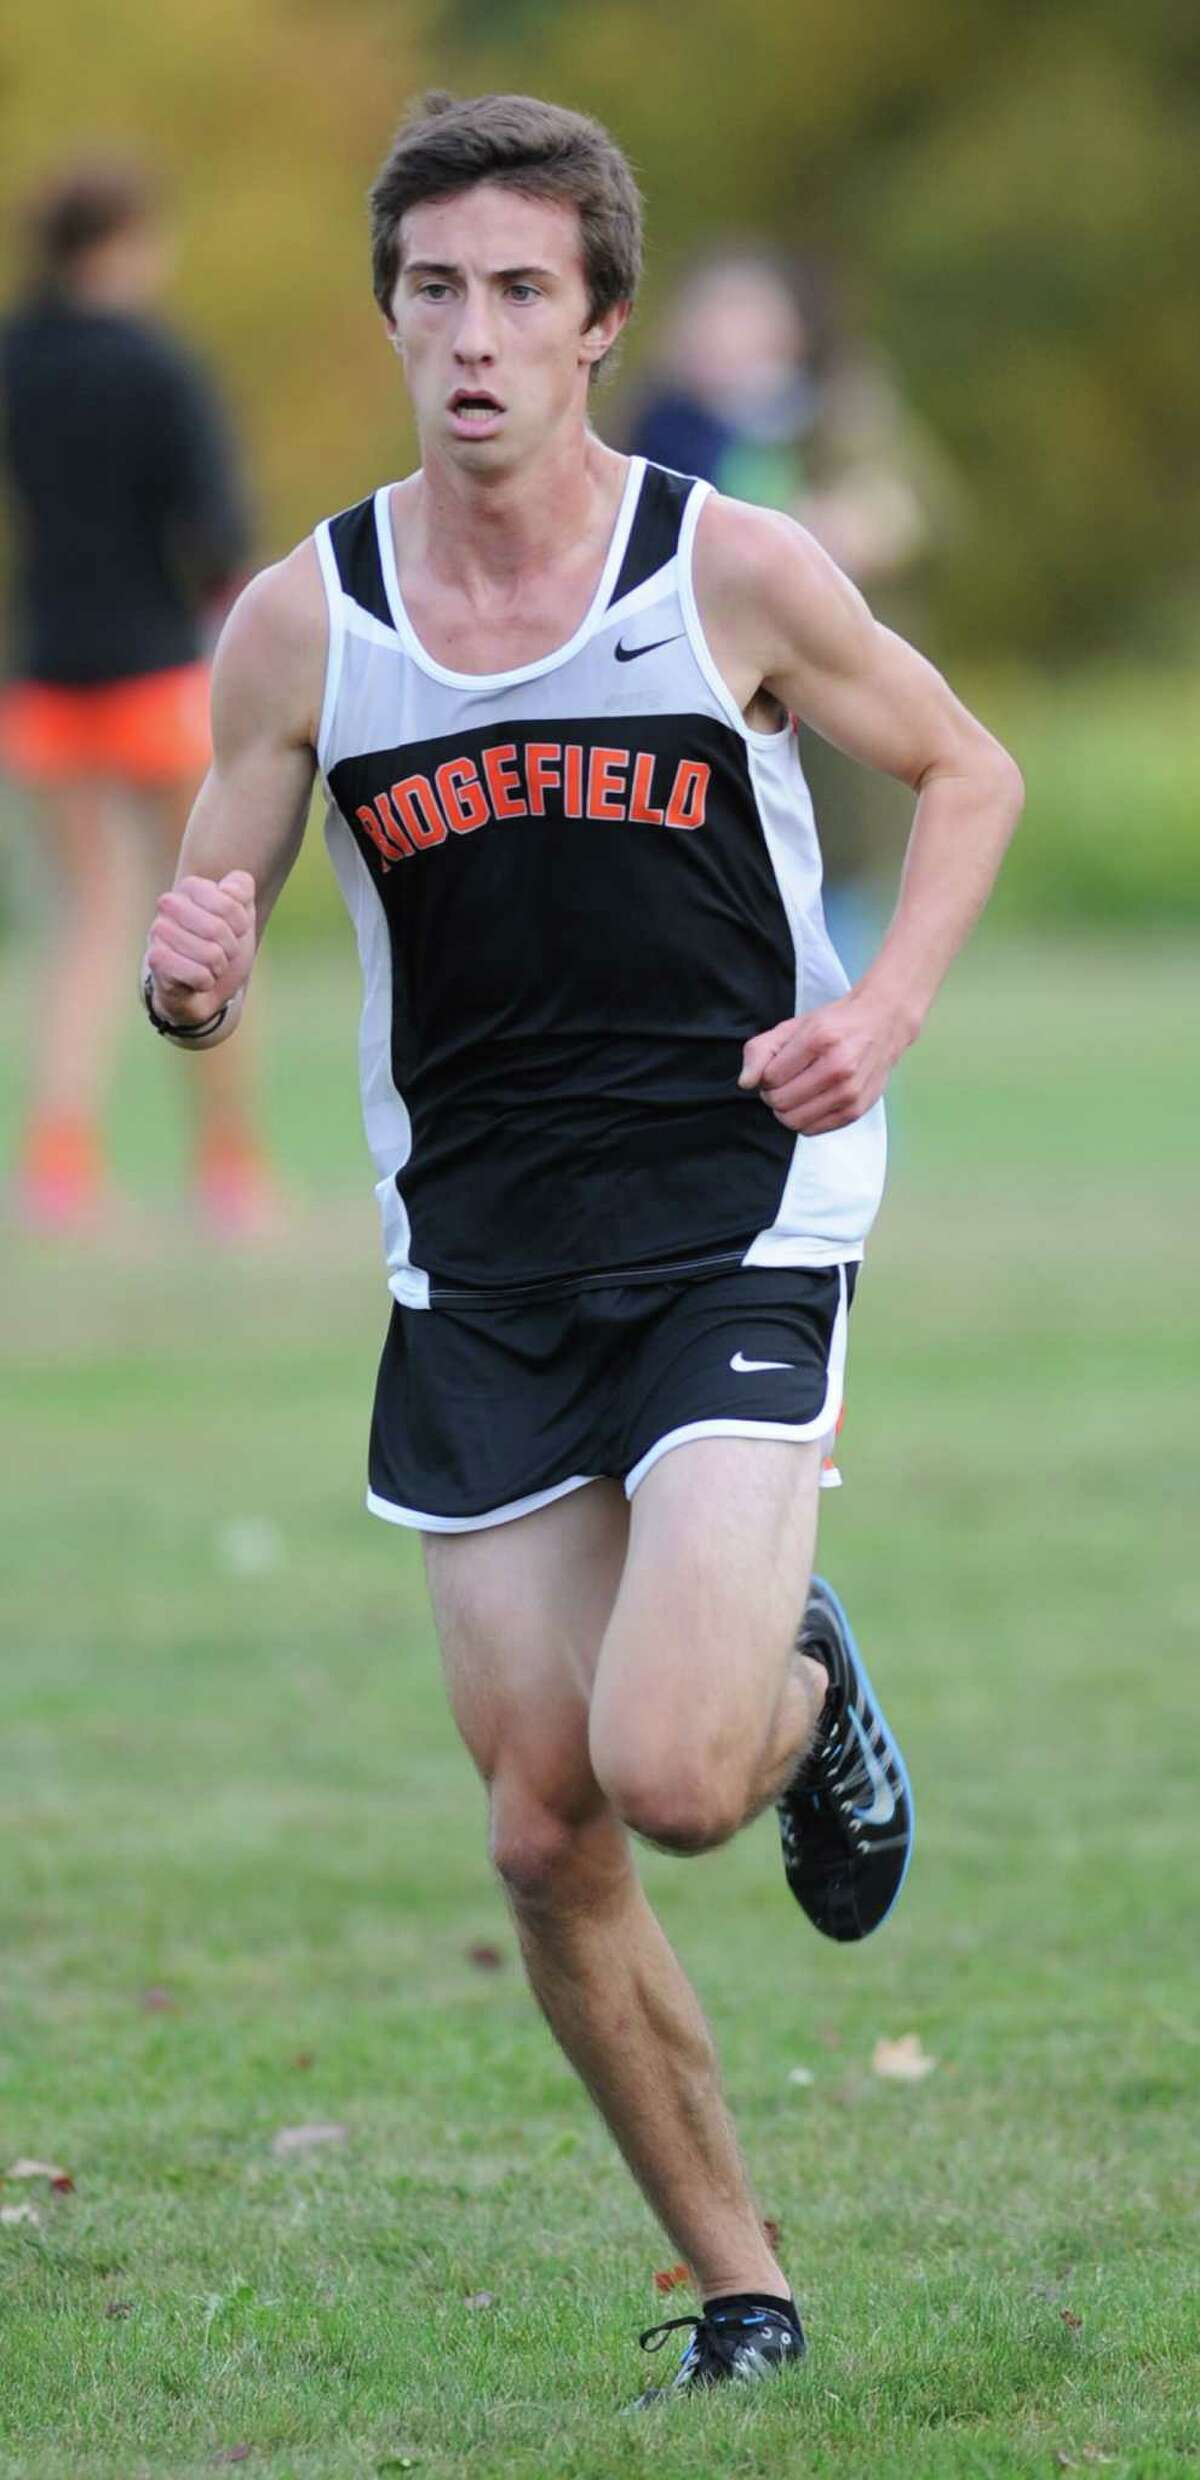 (9) Ridgefield was the class of cross country teams in the state. The Tigers took the triple crown of titles, winning the FCIAC, Class LL, and State Open.